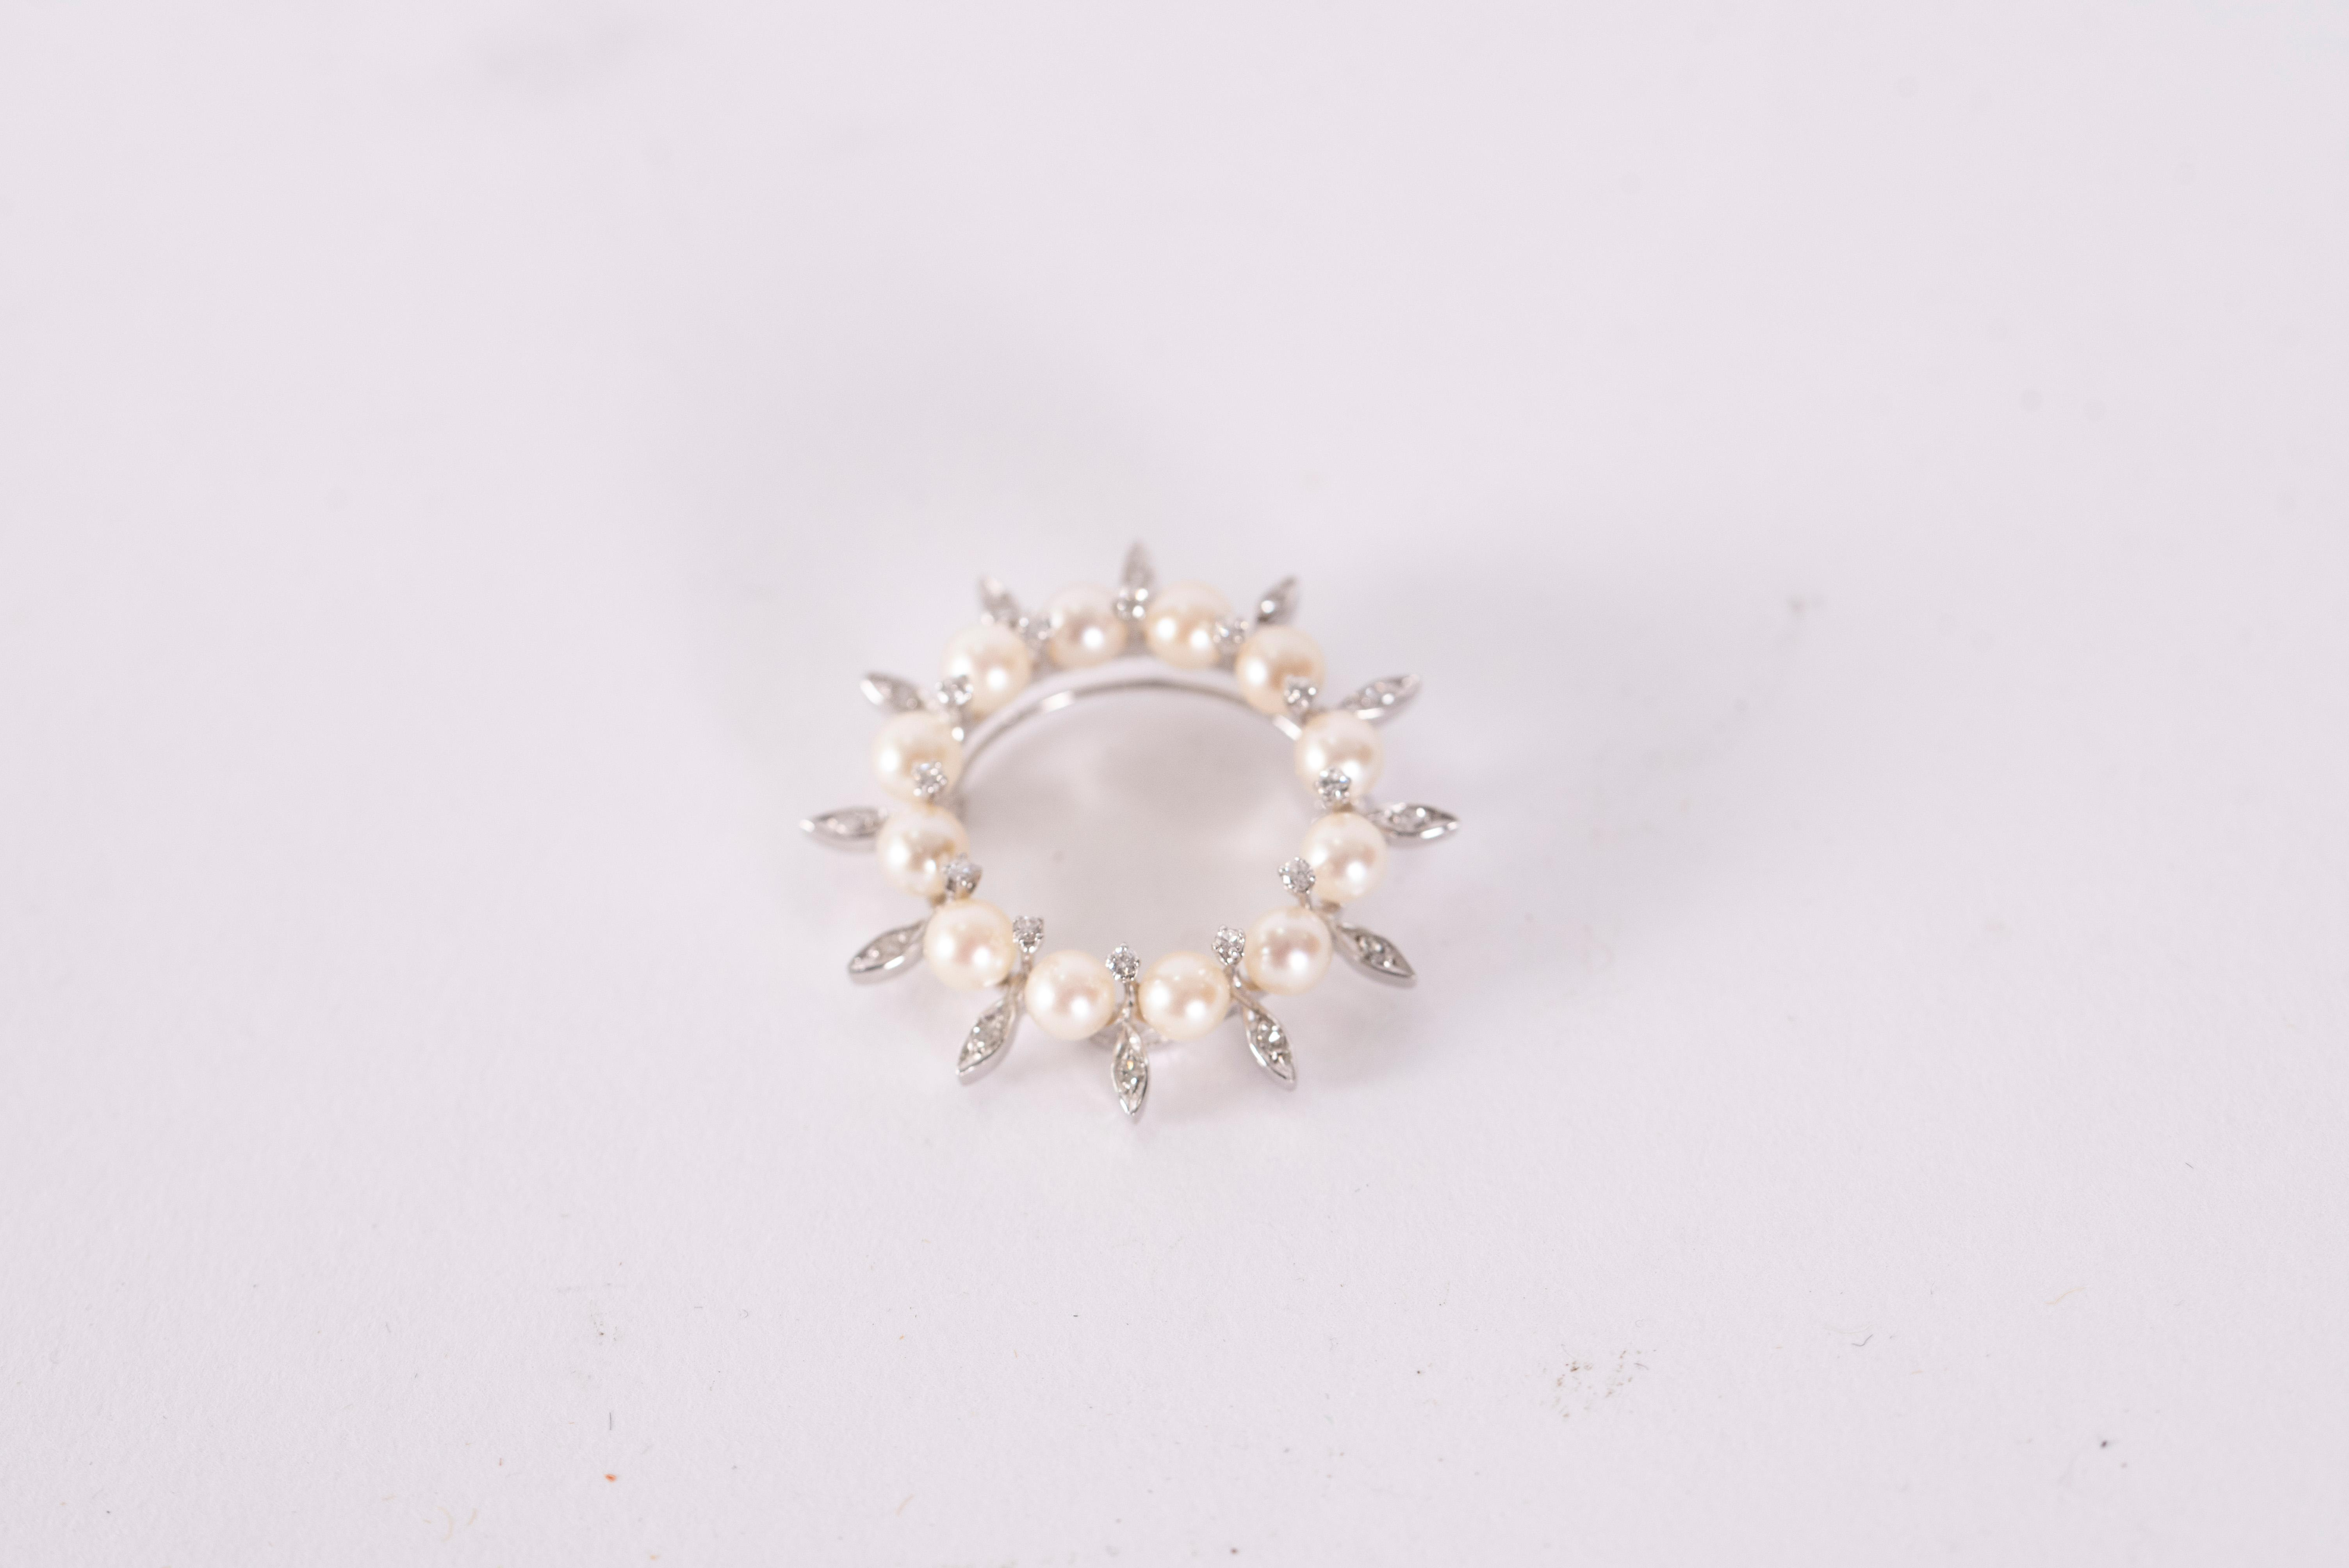 14K White Gold Circle Brooch with Twelve Pearls